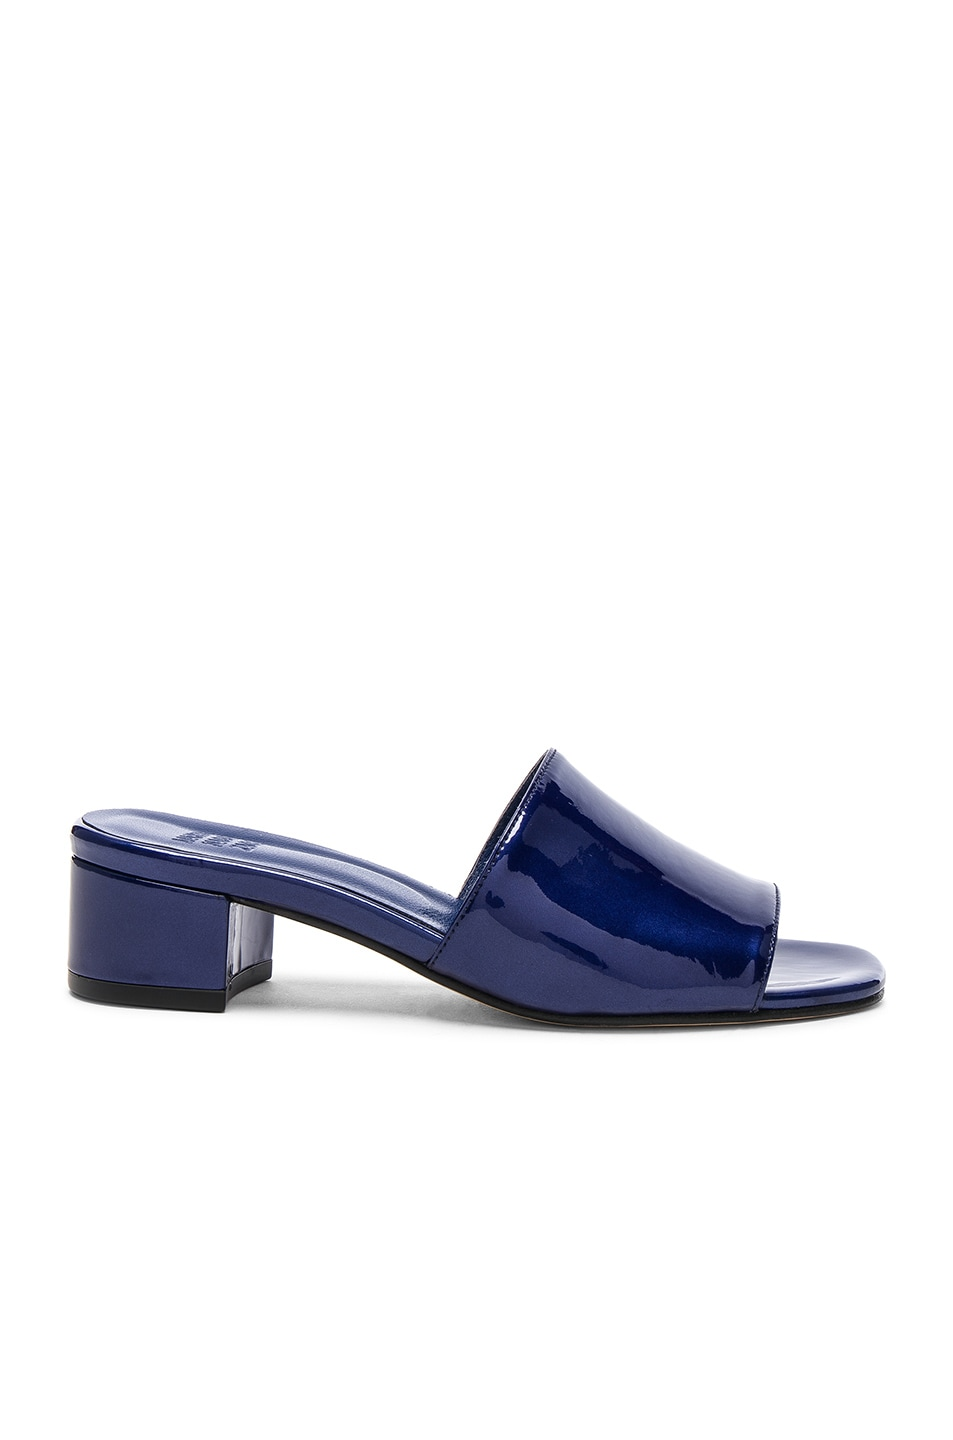 Image 1 of Maryam Nassir Zadeh Patent Leather Sophie Slides in Blue Sparkle